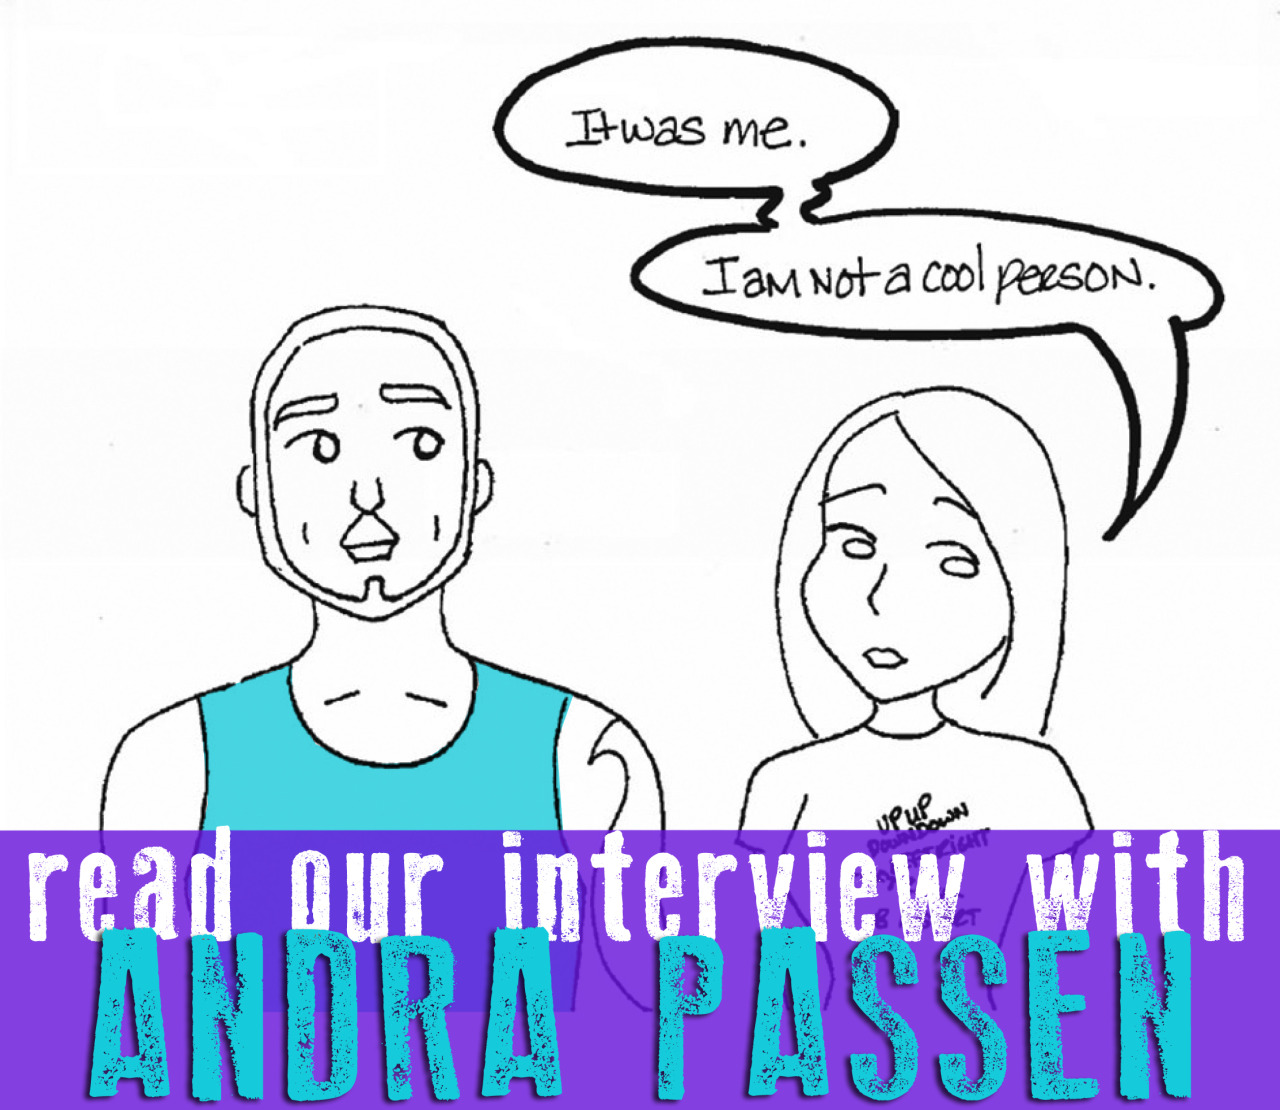 SILVER SPROCKET Interview with Andra Passen    Andra Passen is super rad, and it's not just because  her comic  takes its name from a Lawrence Arms song. In addition to drawing, she's all about making themed dresses, watching Netflix, and other nerdy things. But don't take our word for it; read on to find out more.    Interview by  Natalye  for  Silver Sprocket      Tell us about yourself. How did you get involved in  As You Were ?   I got involved with  AYW  by just being a big ol' fan of  Mitch Clem . I shared my comics before I felt that they were ready to be shared, and I'm really glad I did!   You make some pretty amazing dresses! How did you get into that?   Thank you! I enjoy thematic dresses so that every day can be a costume party. It really just helps as I count down to Halloween each year. In high school my uniform was a baggy band shirt and jeans. My mother would suggest dresses, [and] then when I stepped out in my first comic book dress I think she was a little appalled with the direction I took. When I look at my growing collection, I remember that a loud wardrobe does not indicate a loud personality or wanting any form of attention—it's just fun.    Regarding your contribution to  As You Were: Living Situations , we're dying to know what terrible entertainment would we find in your Netflix history.   My Netflix history is super embarrassing! It includes  Breaking Bad ,  The Wire ,  Lost ,  The Sopranos , and Firefly.  Terrible stuff!   How did you first get into drawing / comics / art?    I had an idea with no skill.     What is your process like?    Sharpie, paper, scanner.   Is there something new or different you've been wanting to try or experiment with?    It's a weird line between defending style and being open to improvement, but I think I would like to take a lesson or learn a computer program. Maybe.   One of the things that stands out in your art is that each new autobiographical drawing features you wearing a different band t-shirt. Is it a